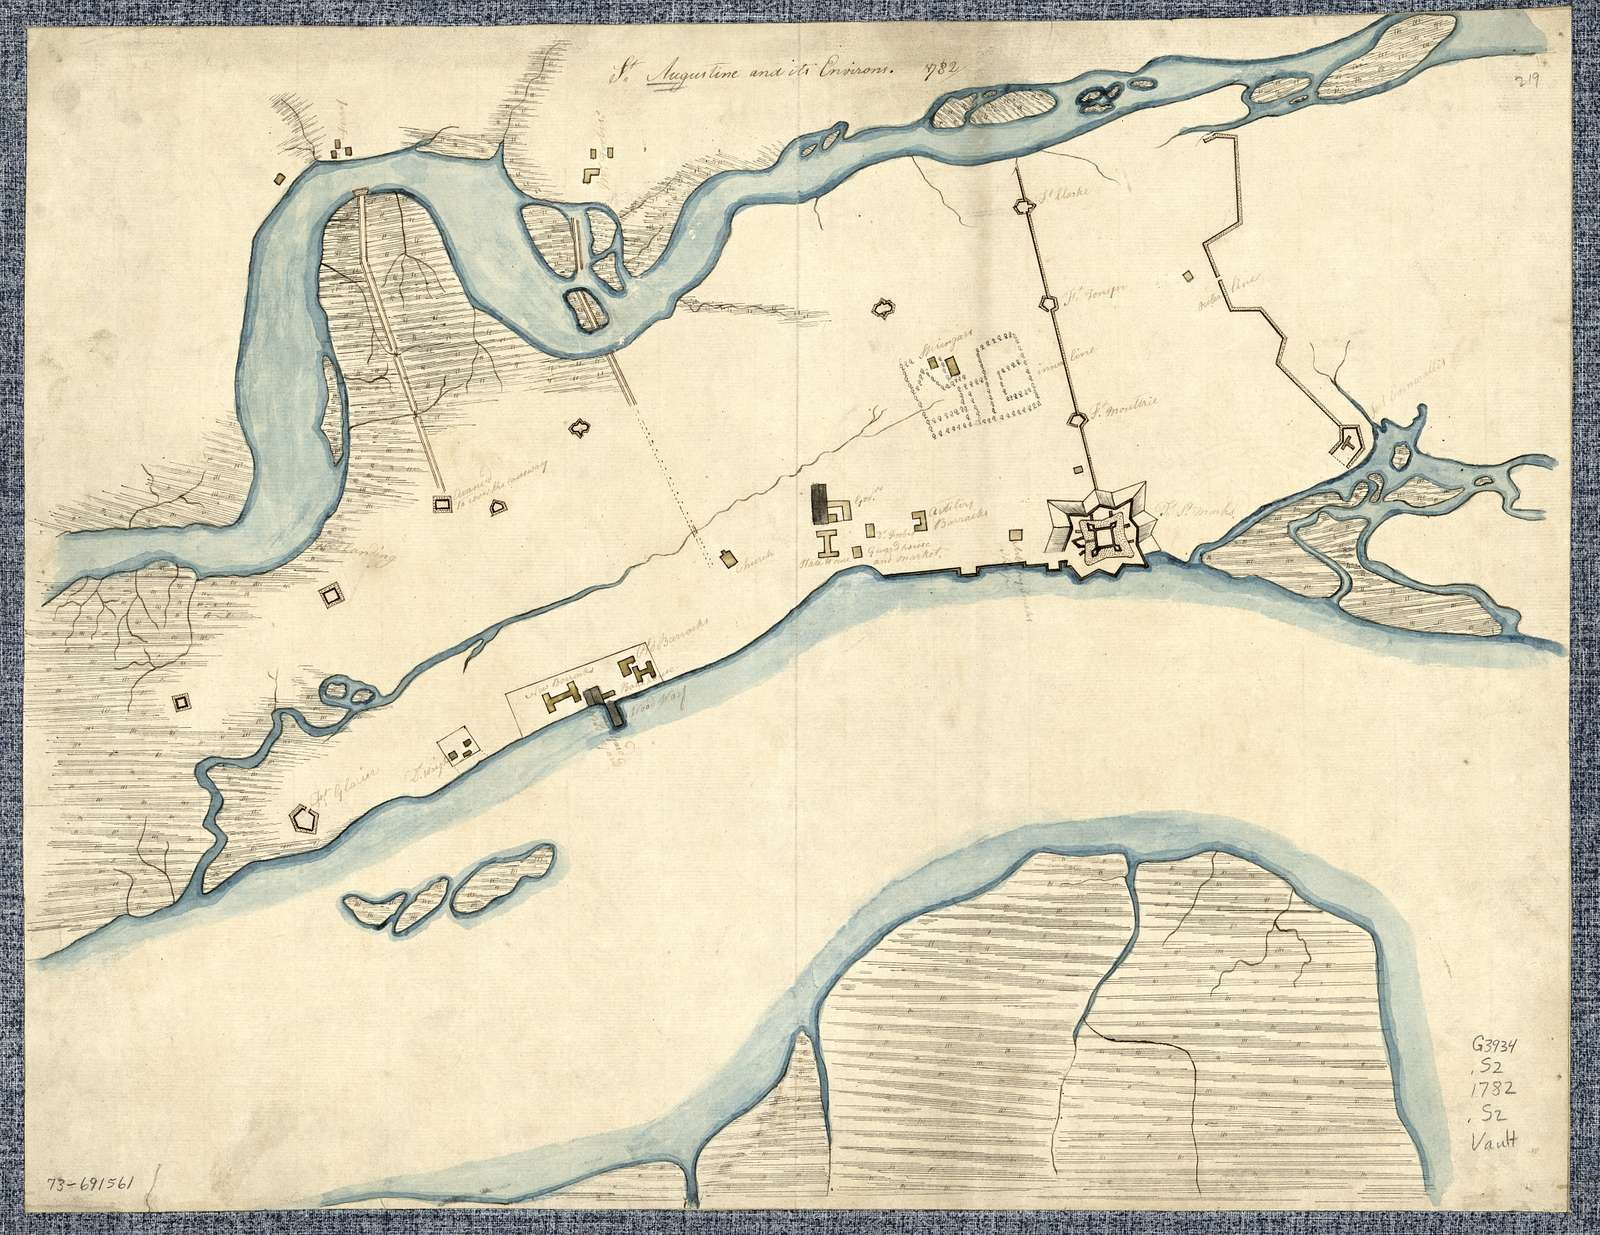 St. Augustine and its environs.